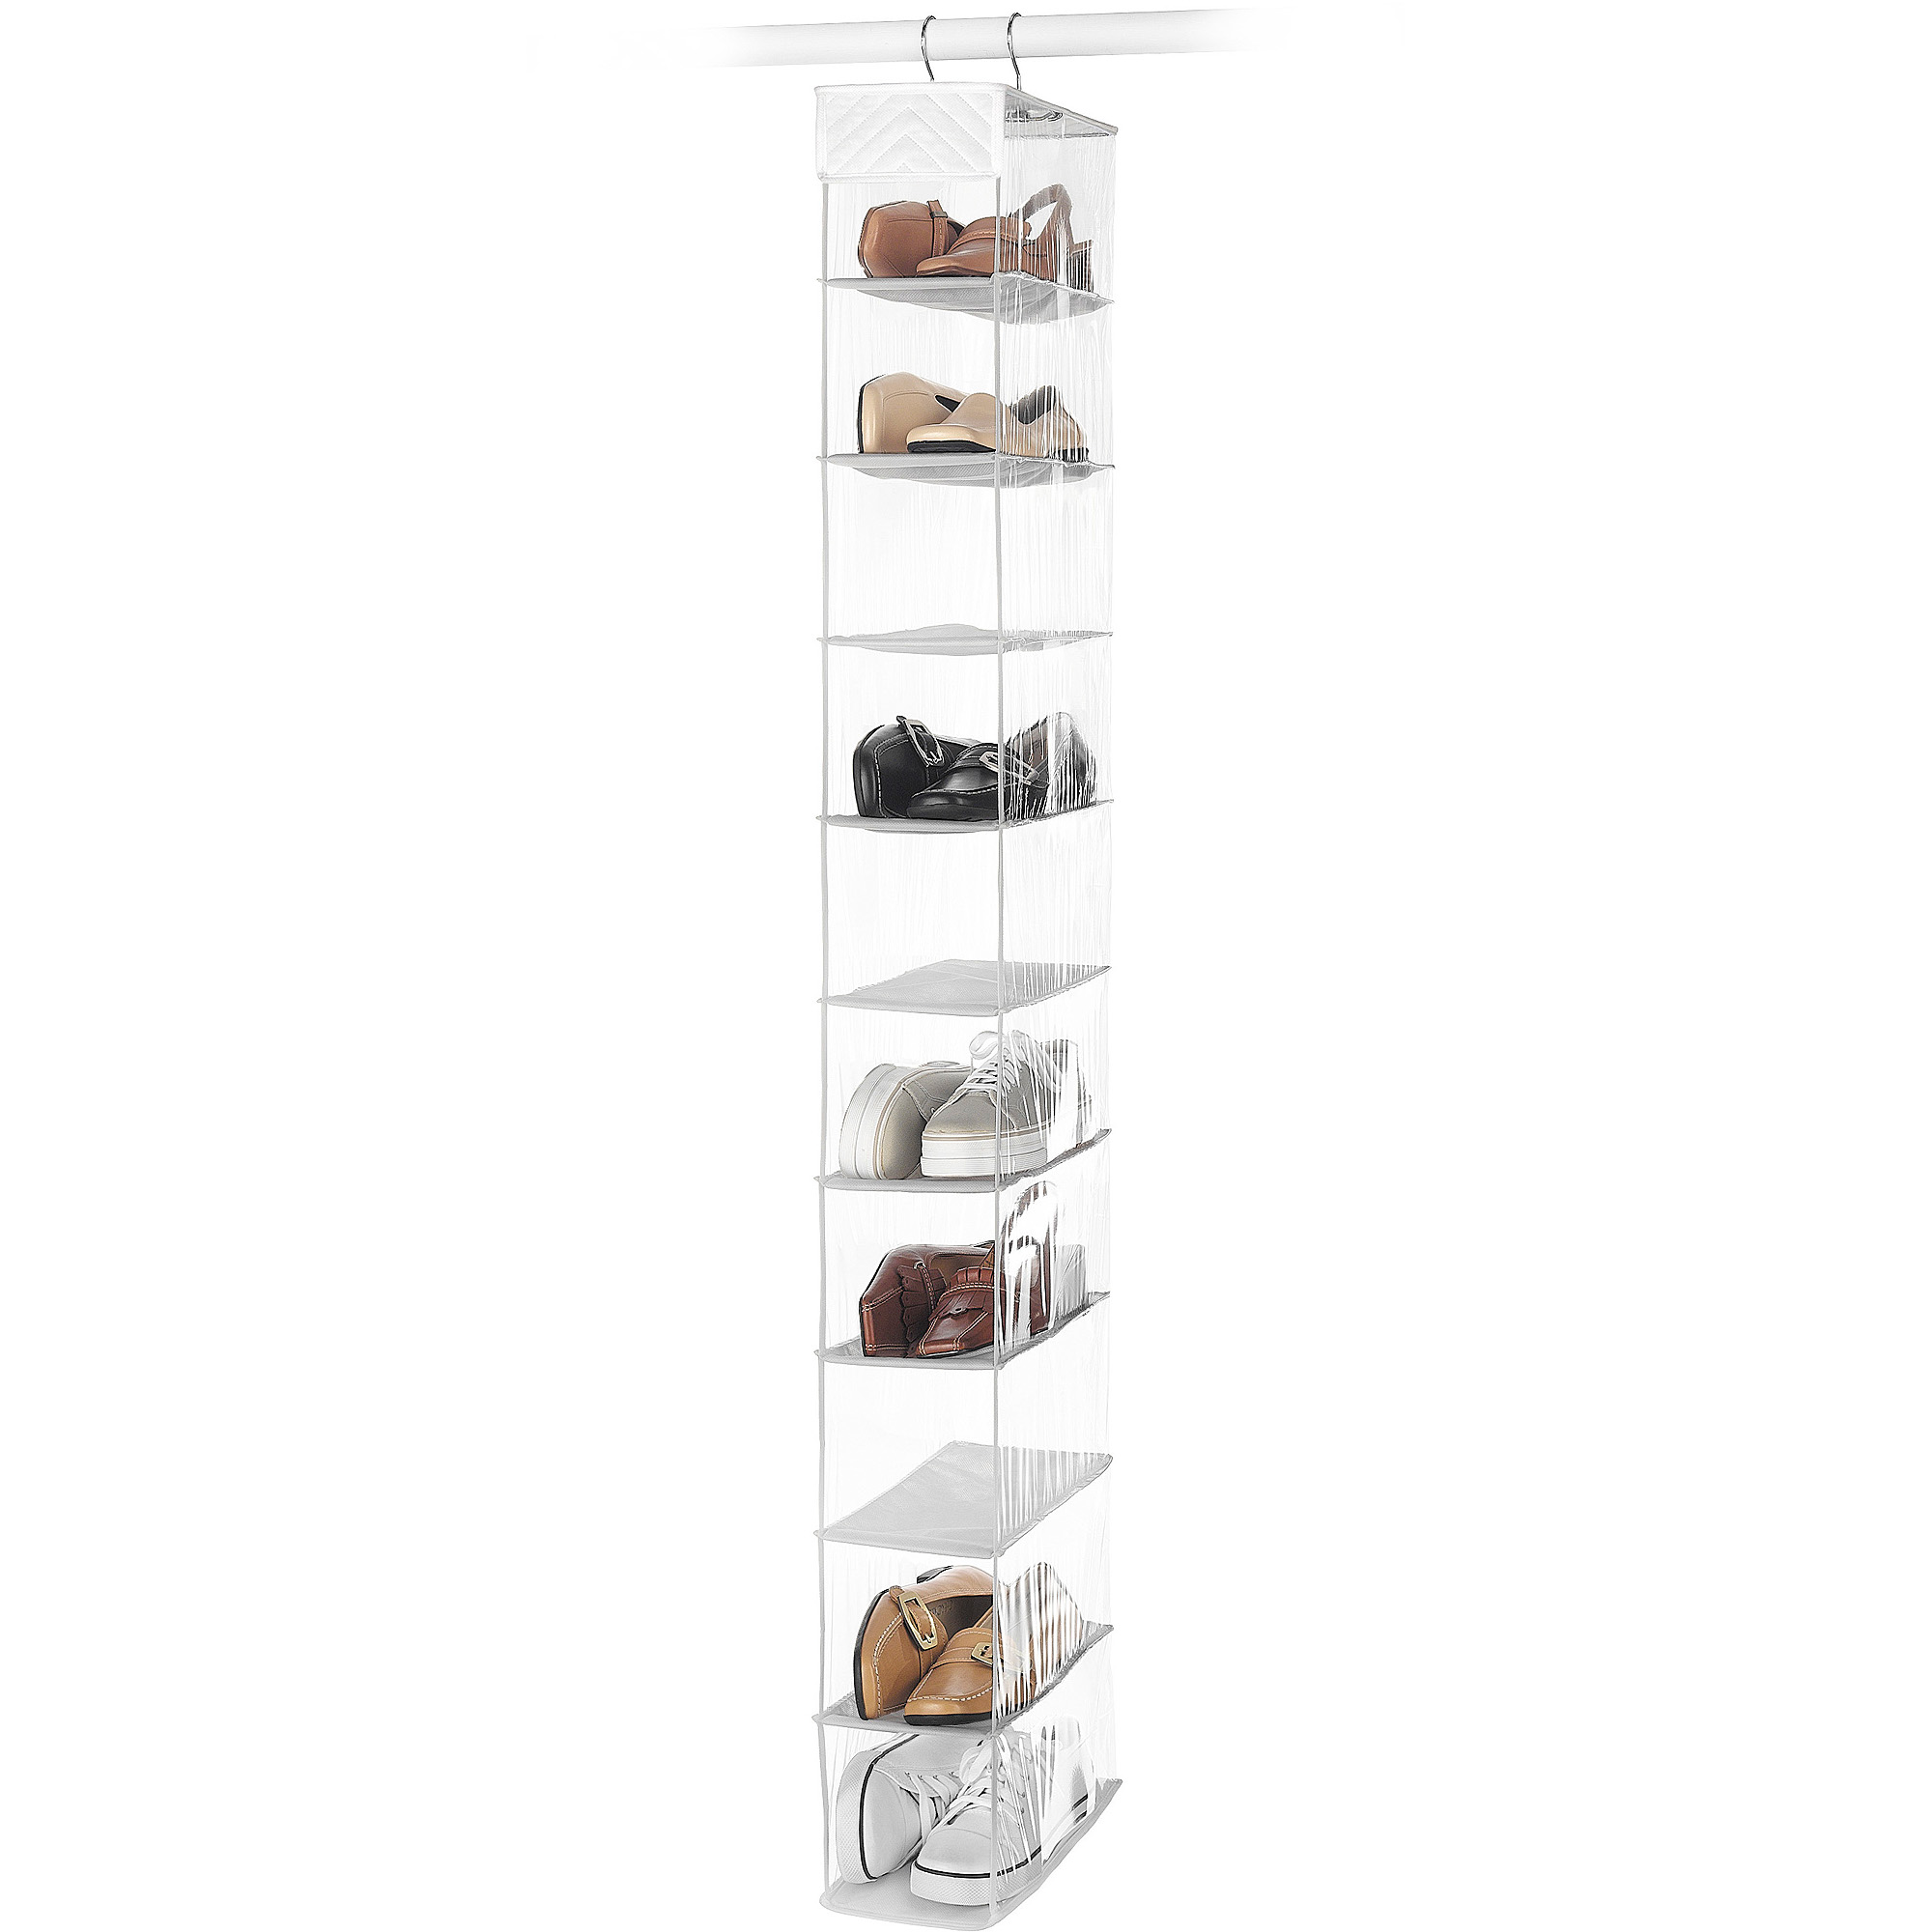 Whitmor 10 Section Hanging Shoe Shelf White by Whitmor Inc